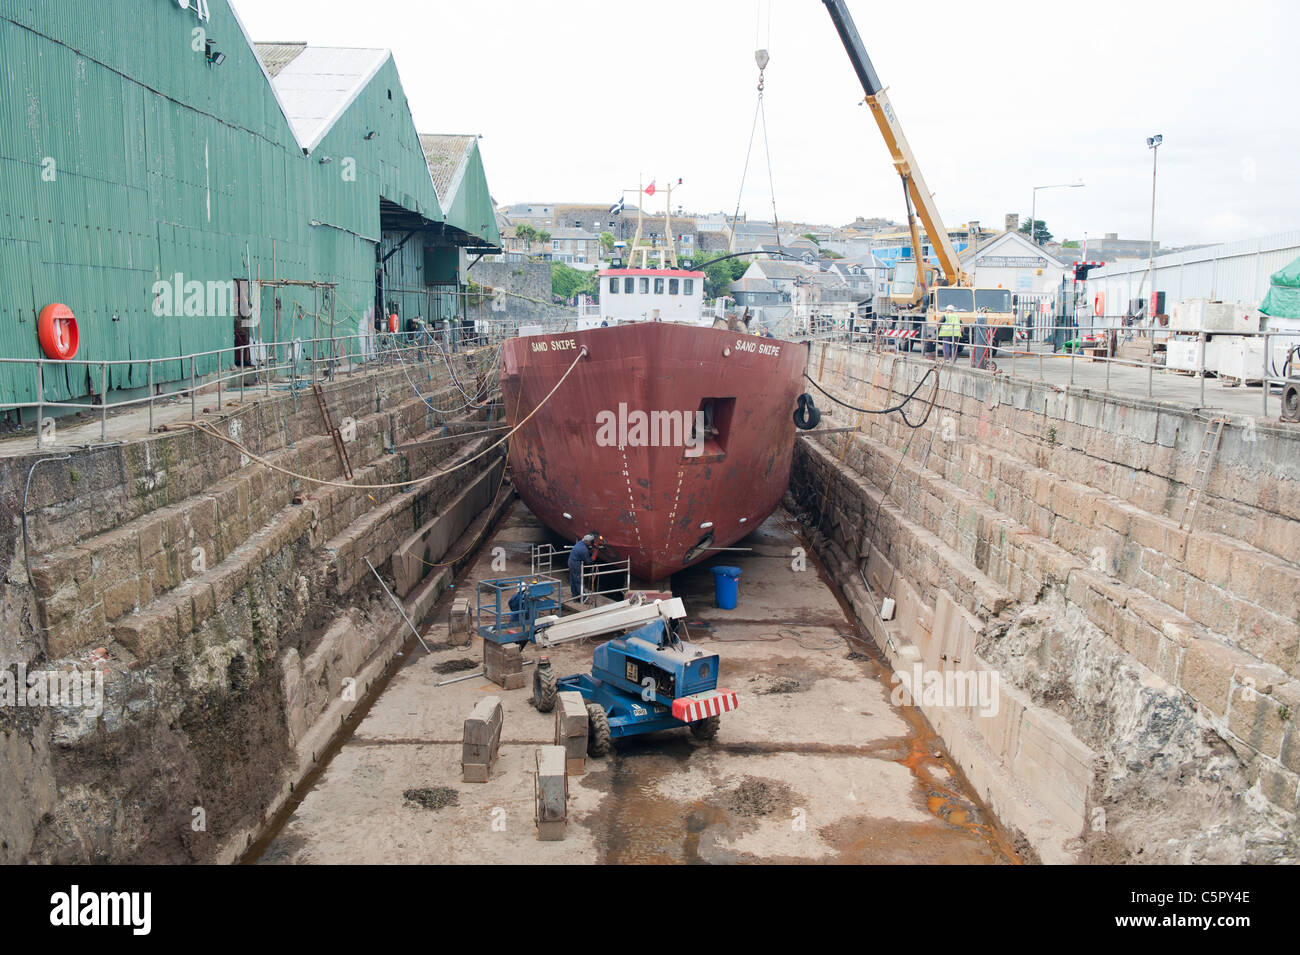 A ship is repaired at a dry dock in Penznace, Cornwall. - Stock Image